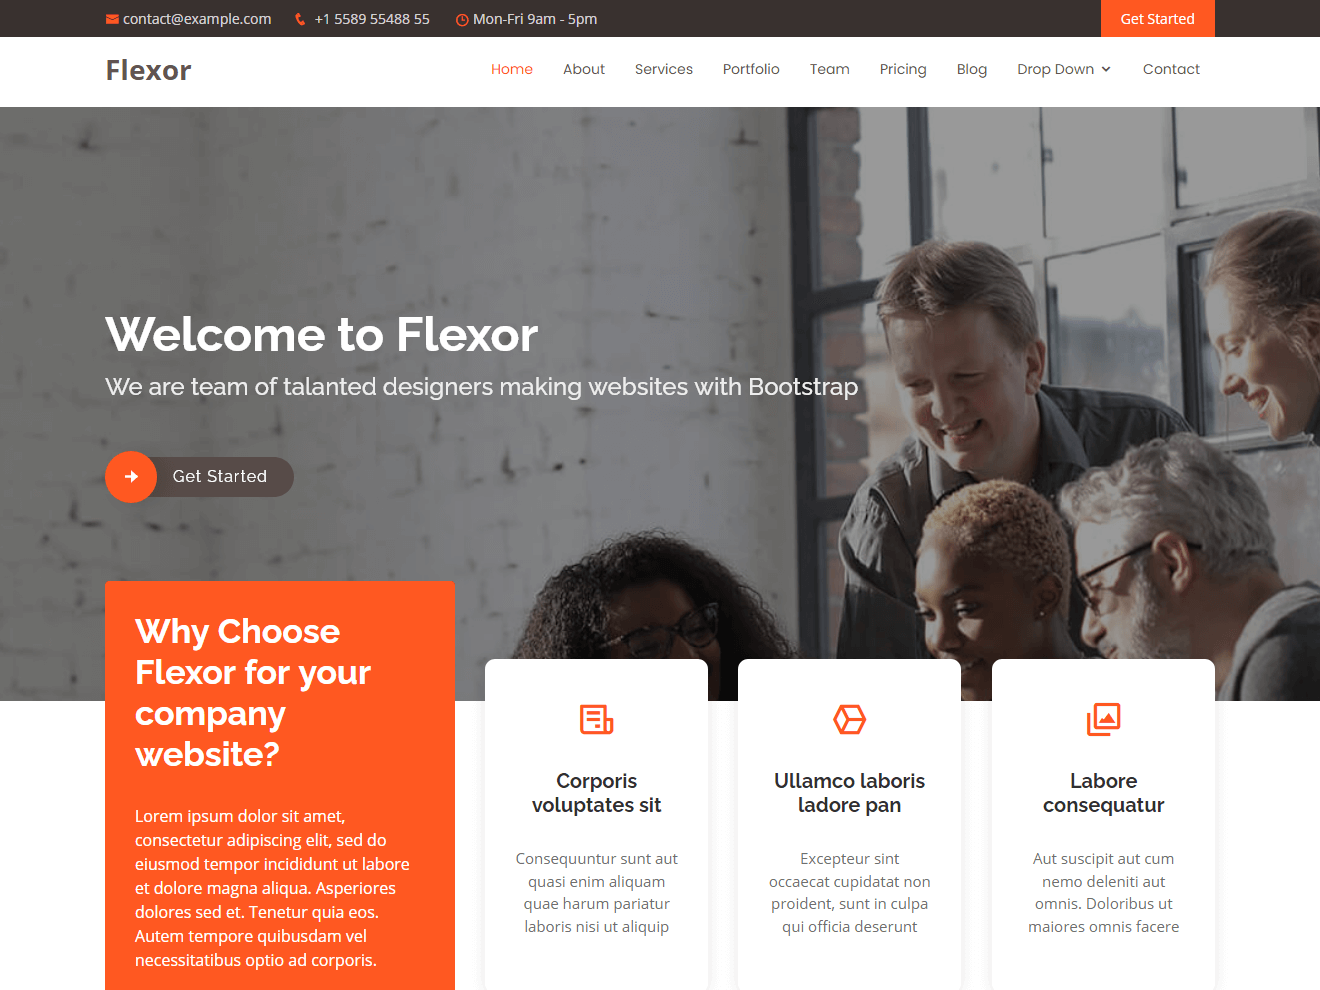 Flexor – Free Multipurpose Bootstrap Template | BootstrapMade on free soap template, free social template, free wordpress template, free test template, free photoshop template, free education template, free photography template, free joomla template, free windows template, free skeleton template, free design template, free search template, free leaflet template, free form template, free cloud template, free mobile template, free database template, free html template, free spring template, free grid template,